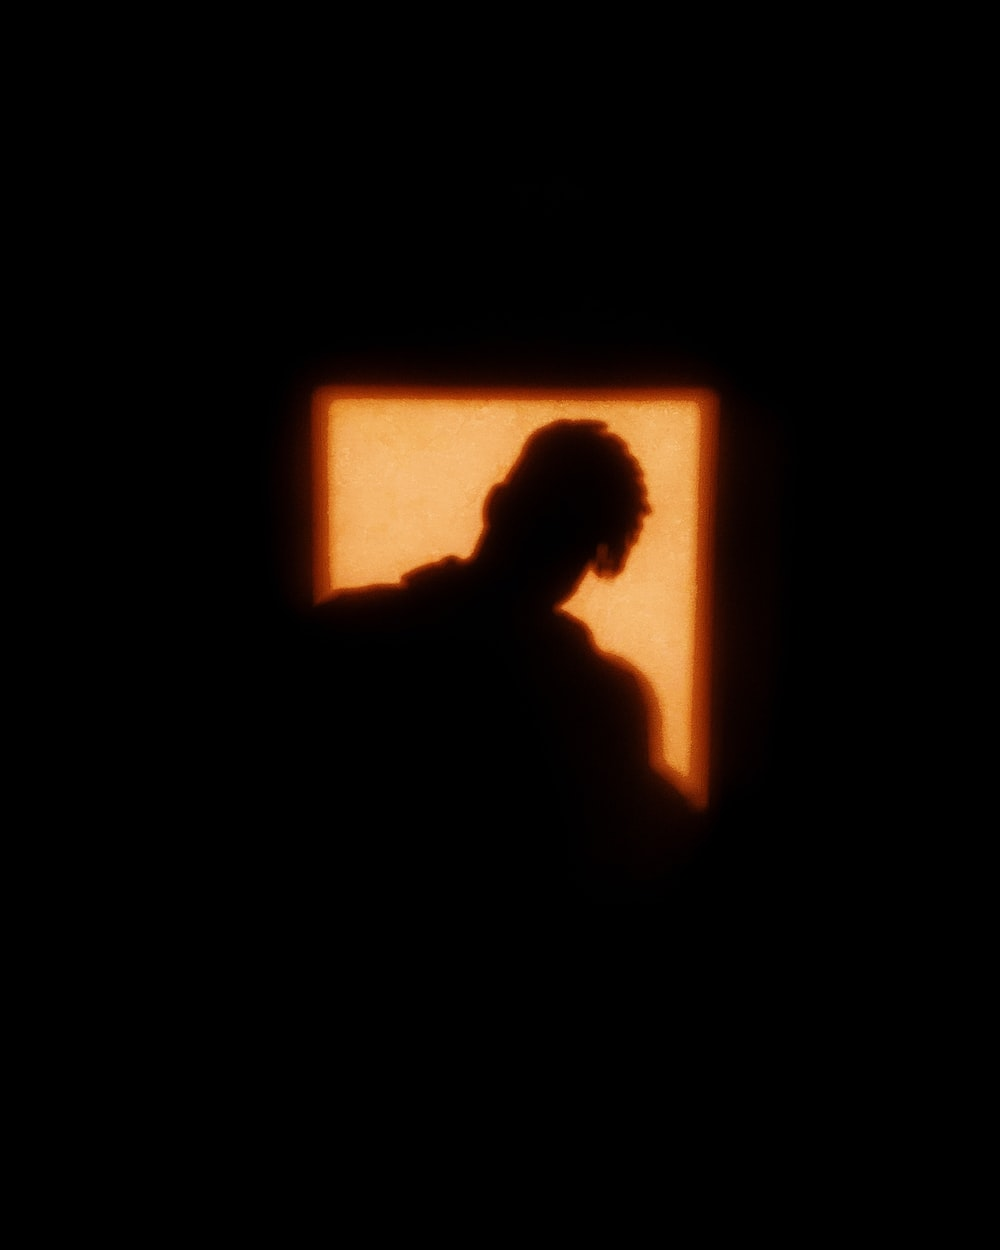 silhouette of man in front of window